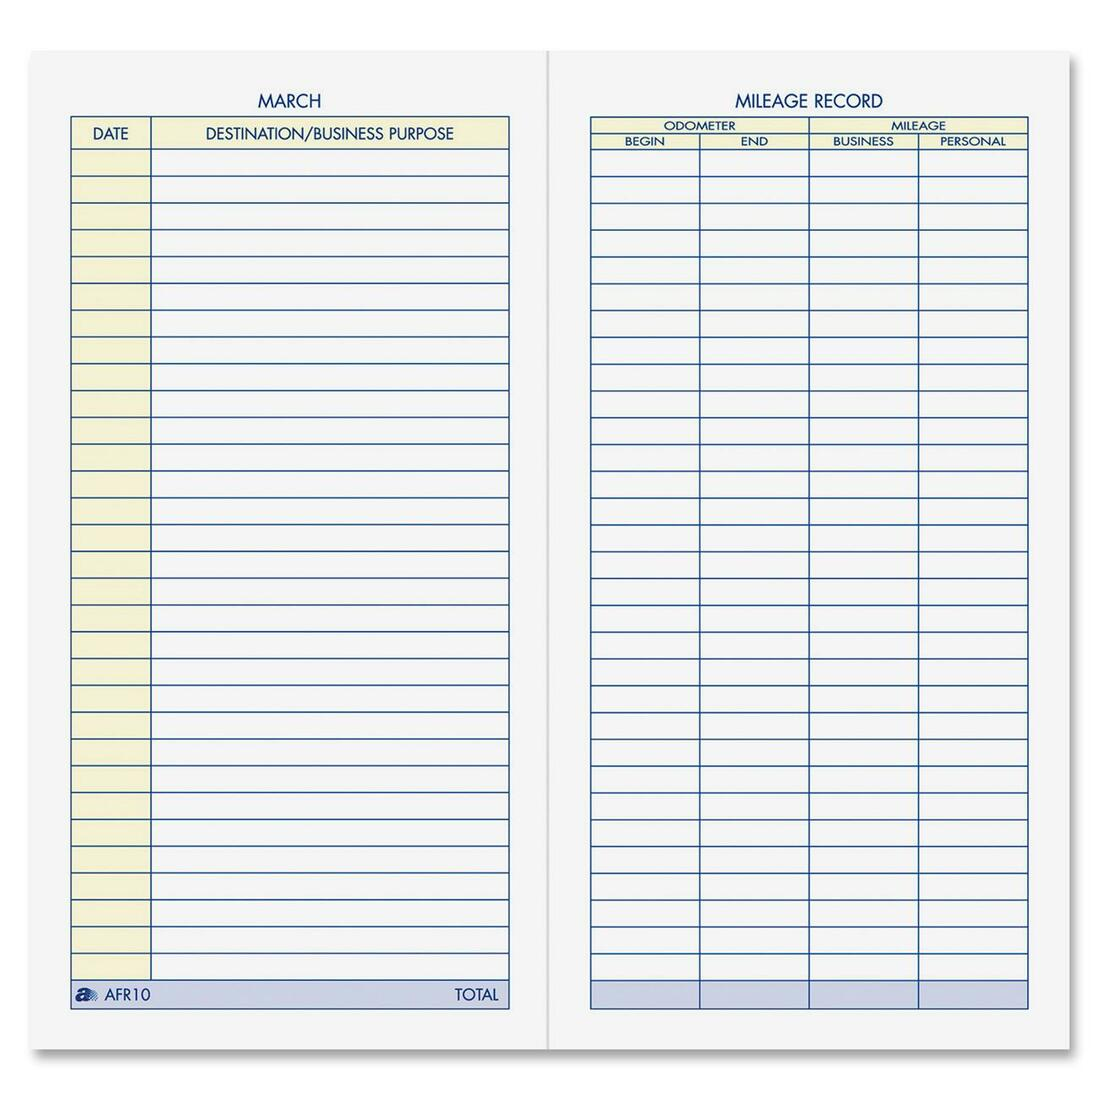 "Adams Vehicle Mileage Log - 64 Sheet[s] - 6.25"" X 3.25"" Sheet Size ..."